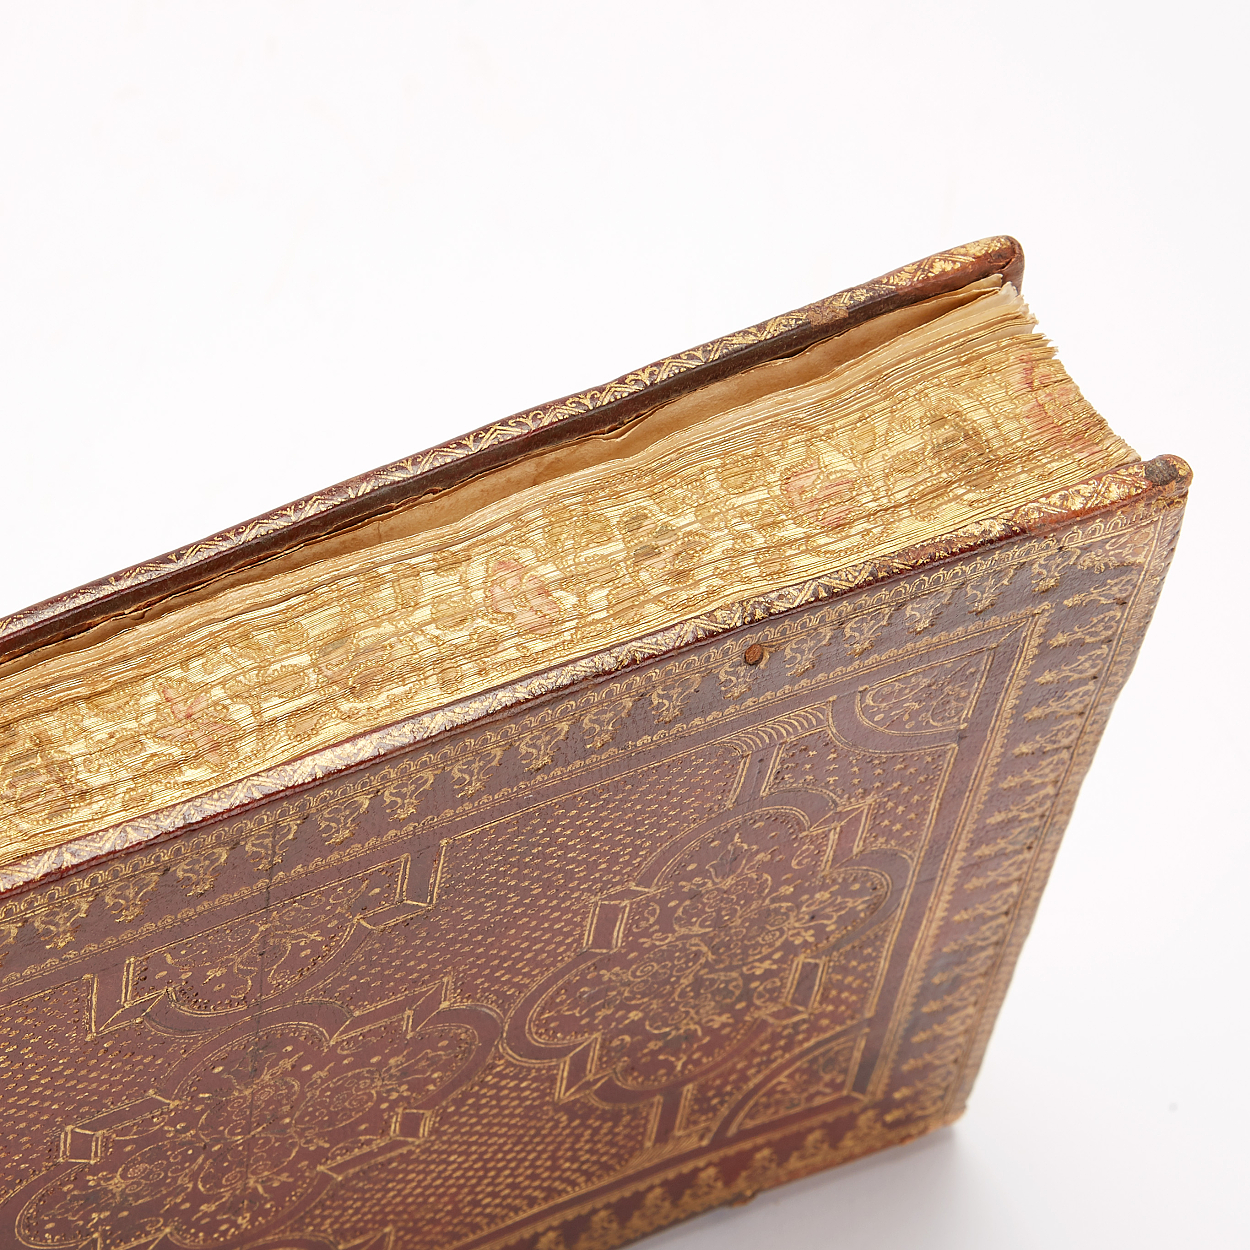 Contemporary Italian binding in Rospigliosi style